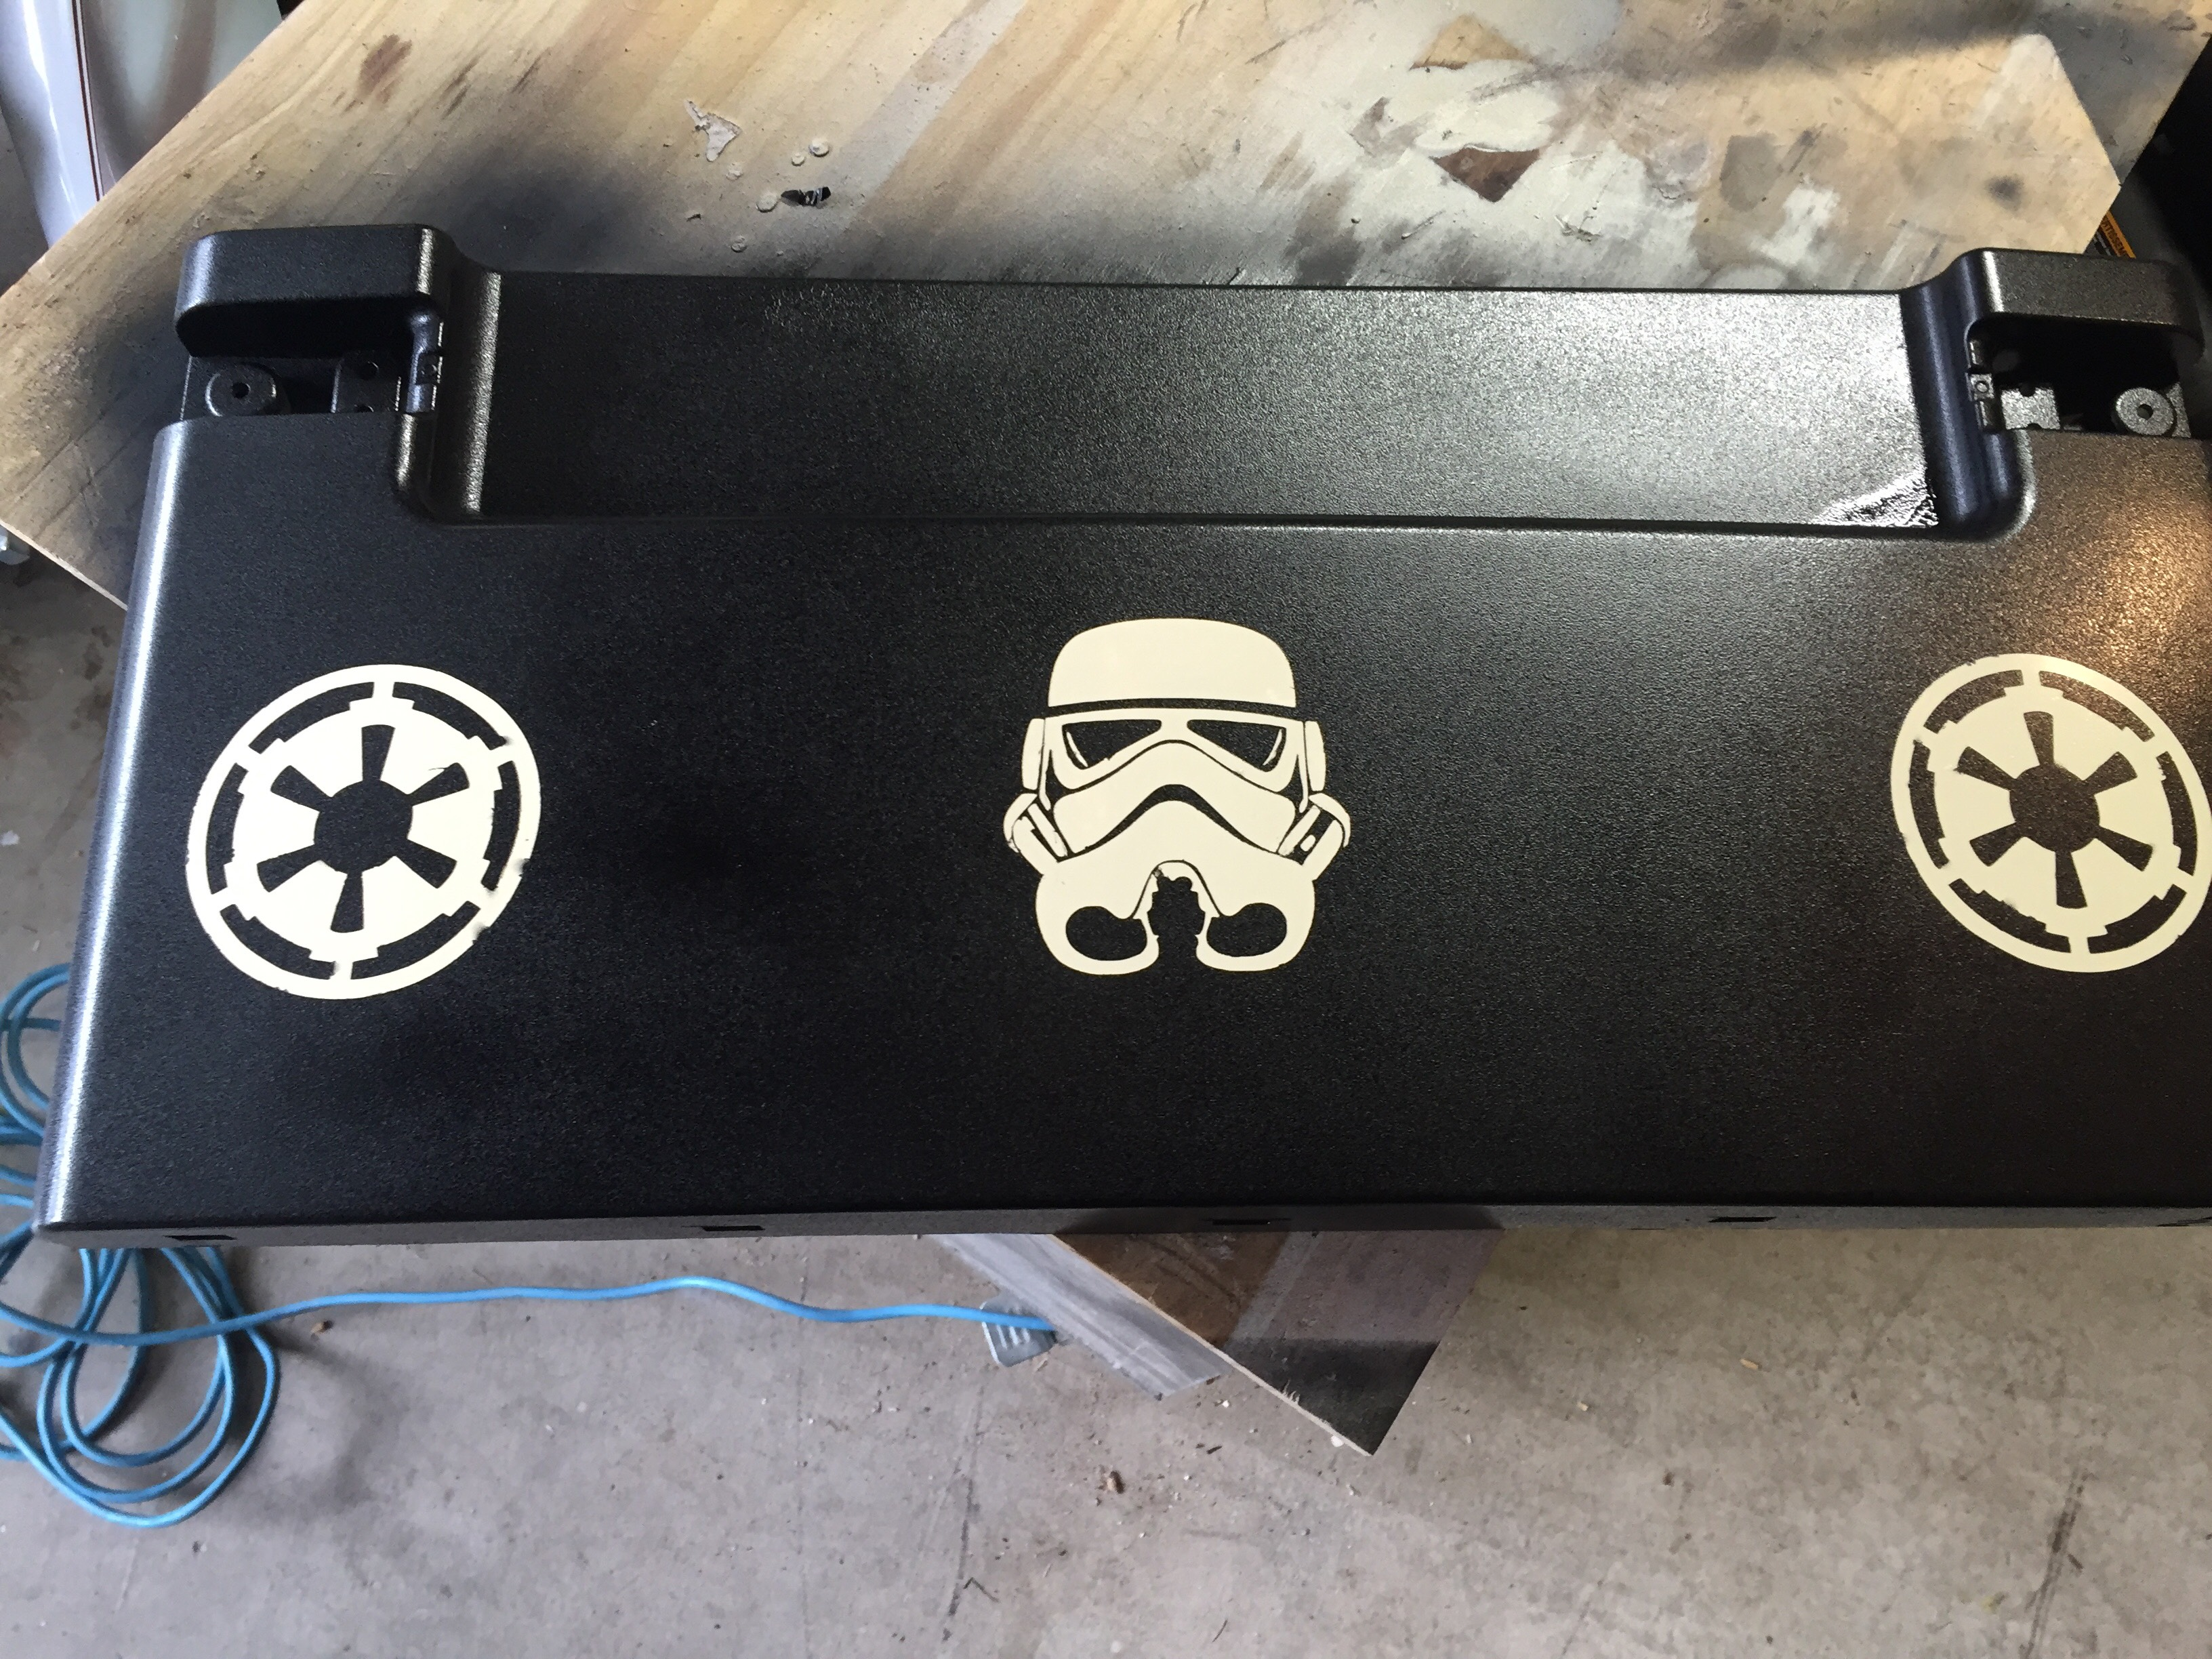 Picture of Star Wars Bins From Old LG Storage Bins